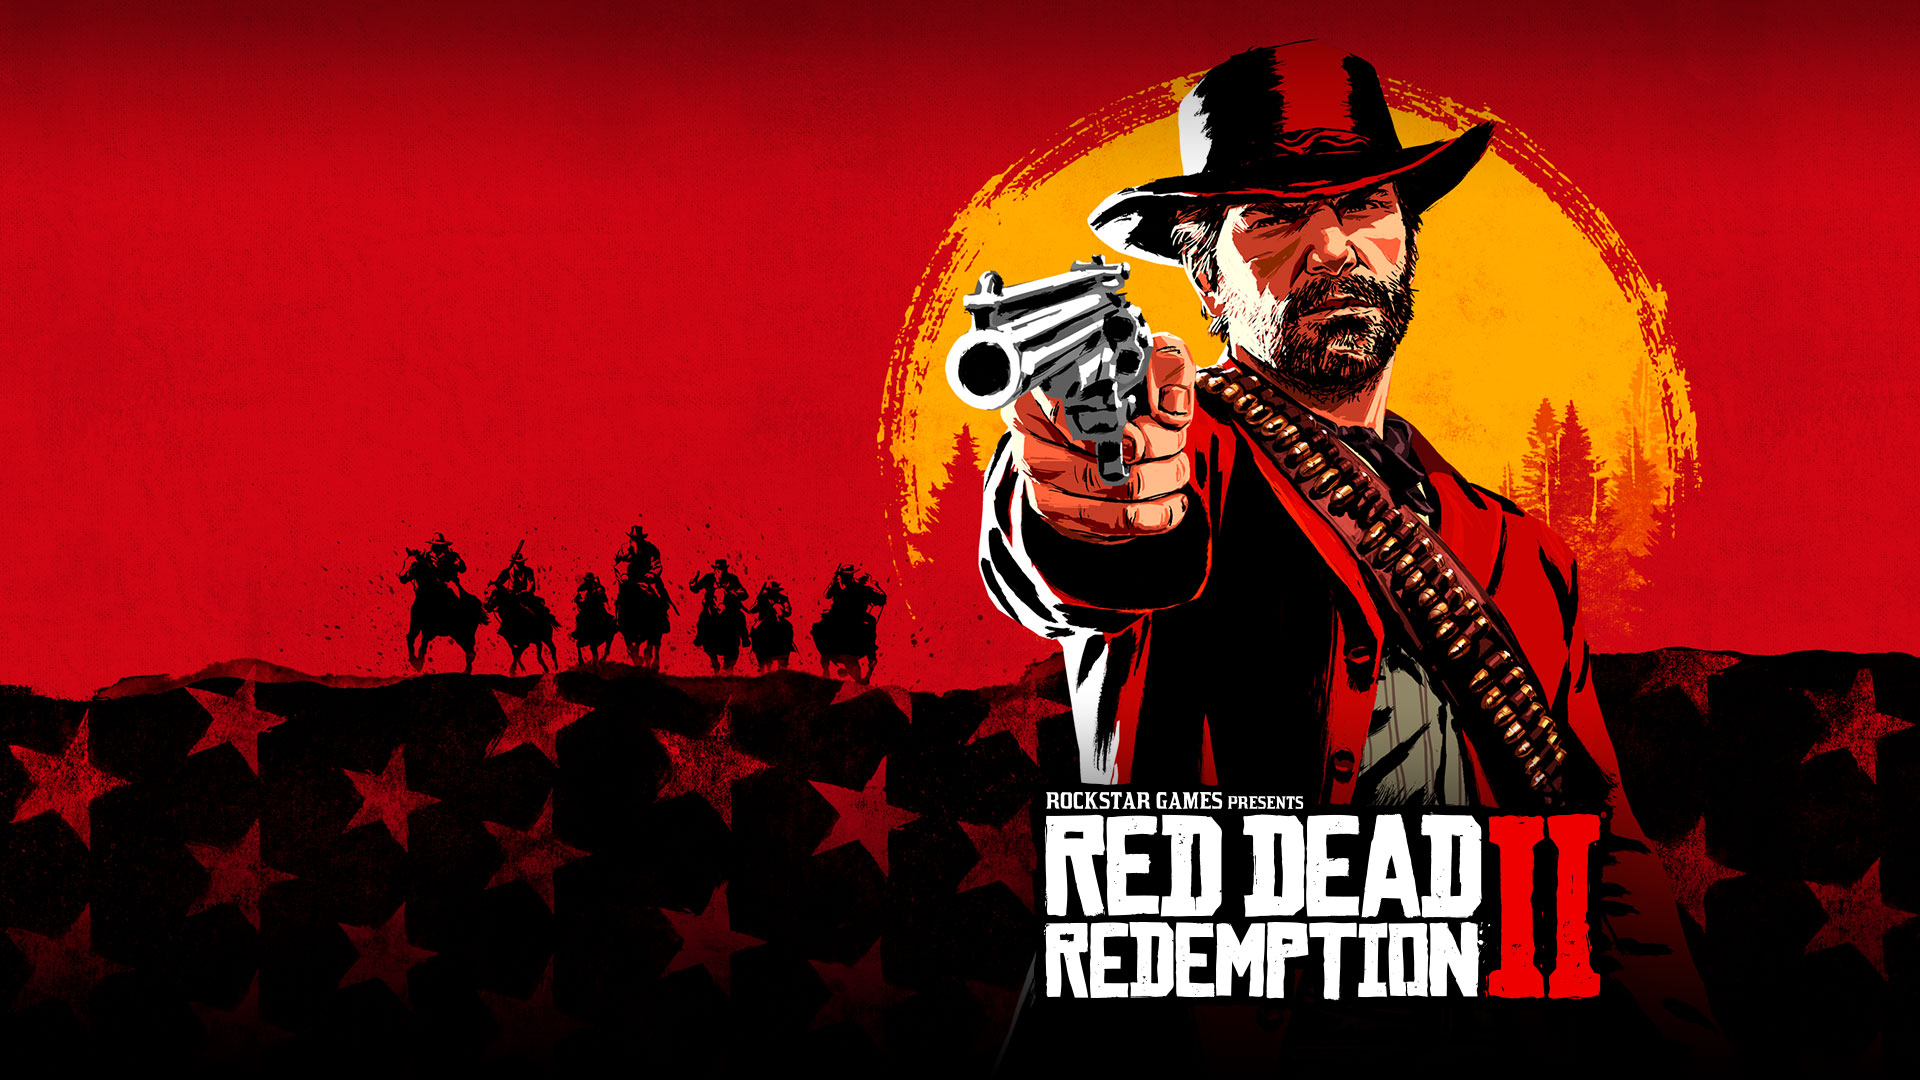 Red dead redemption 2 in VR